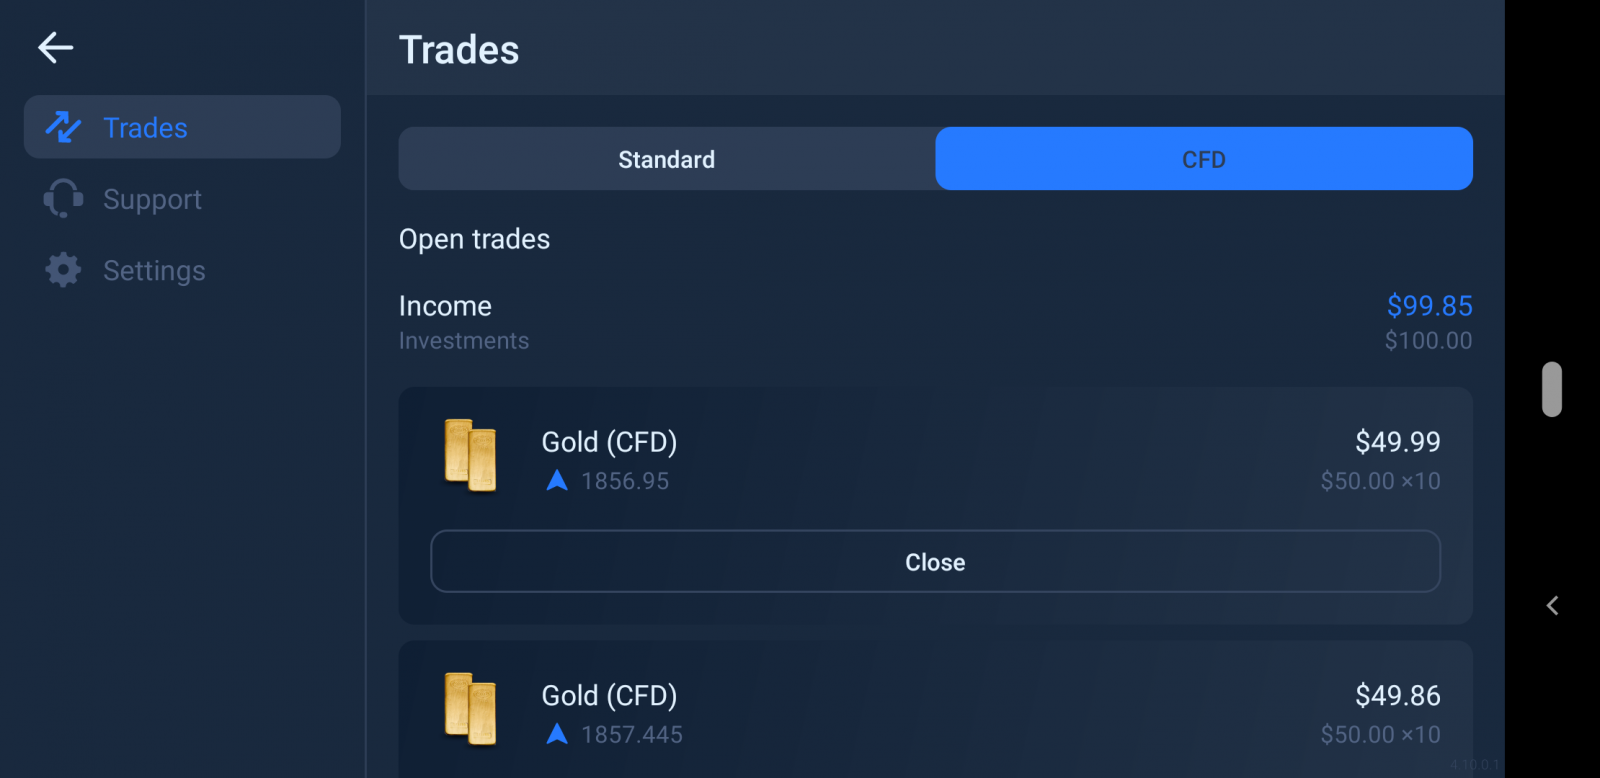 How to Trade on CFD in Binomo